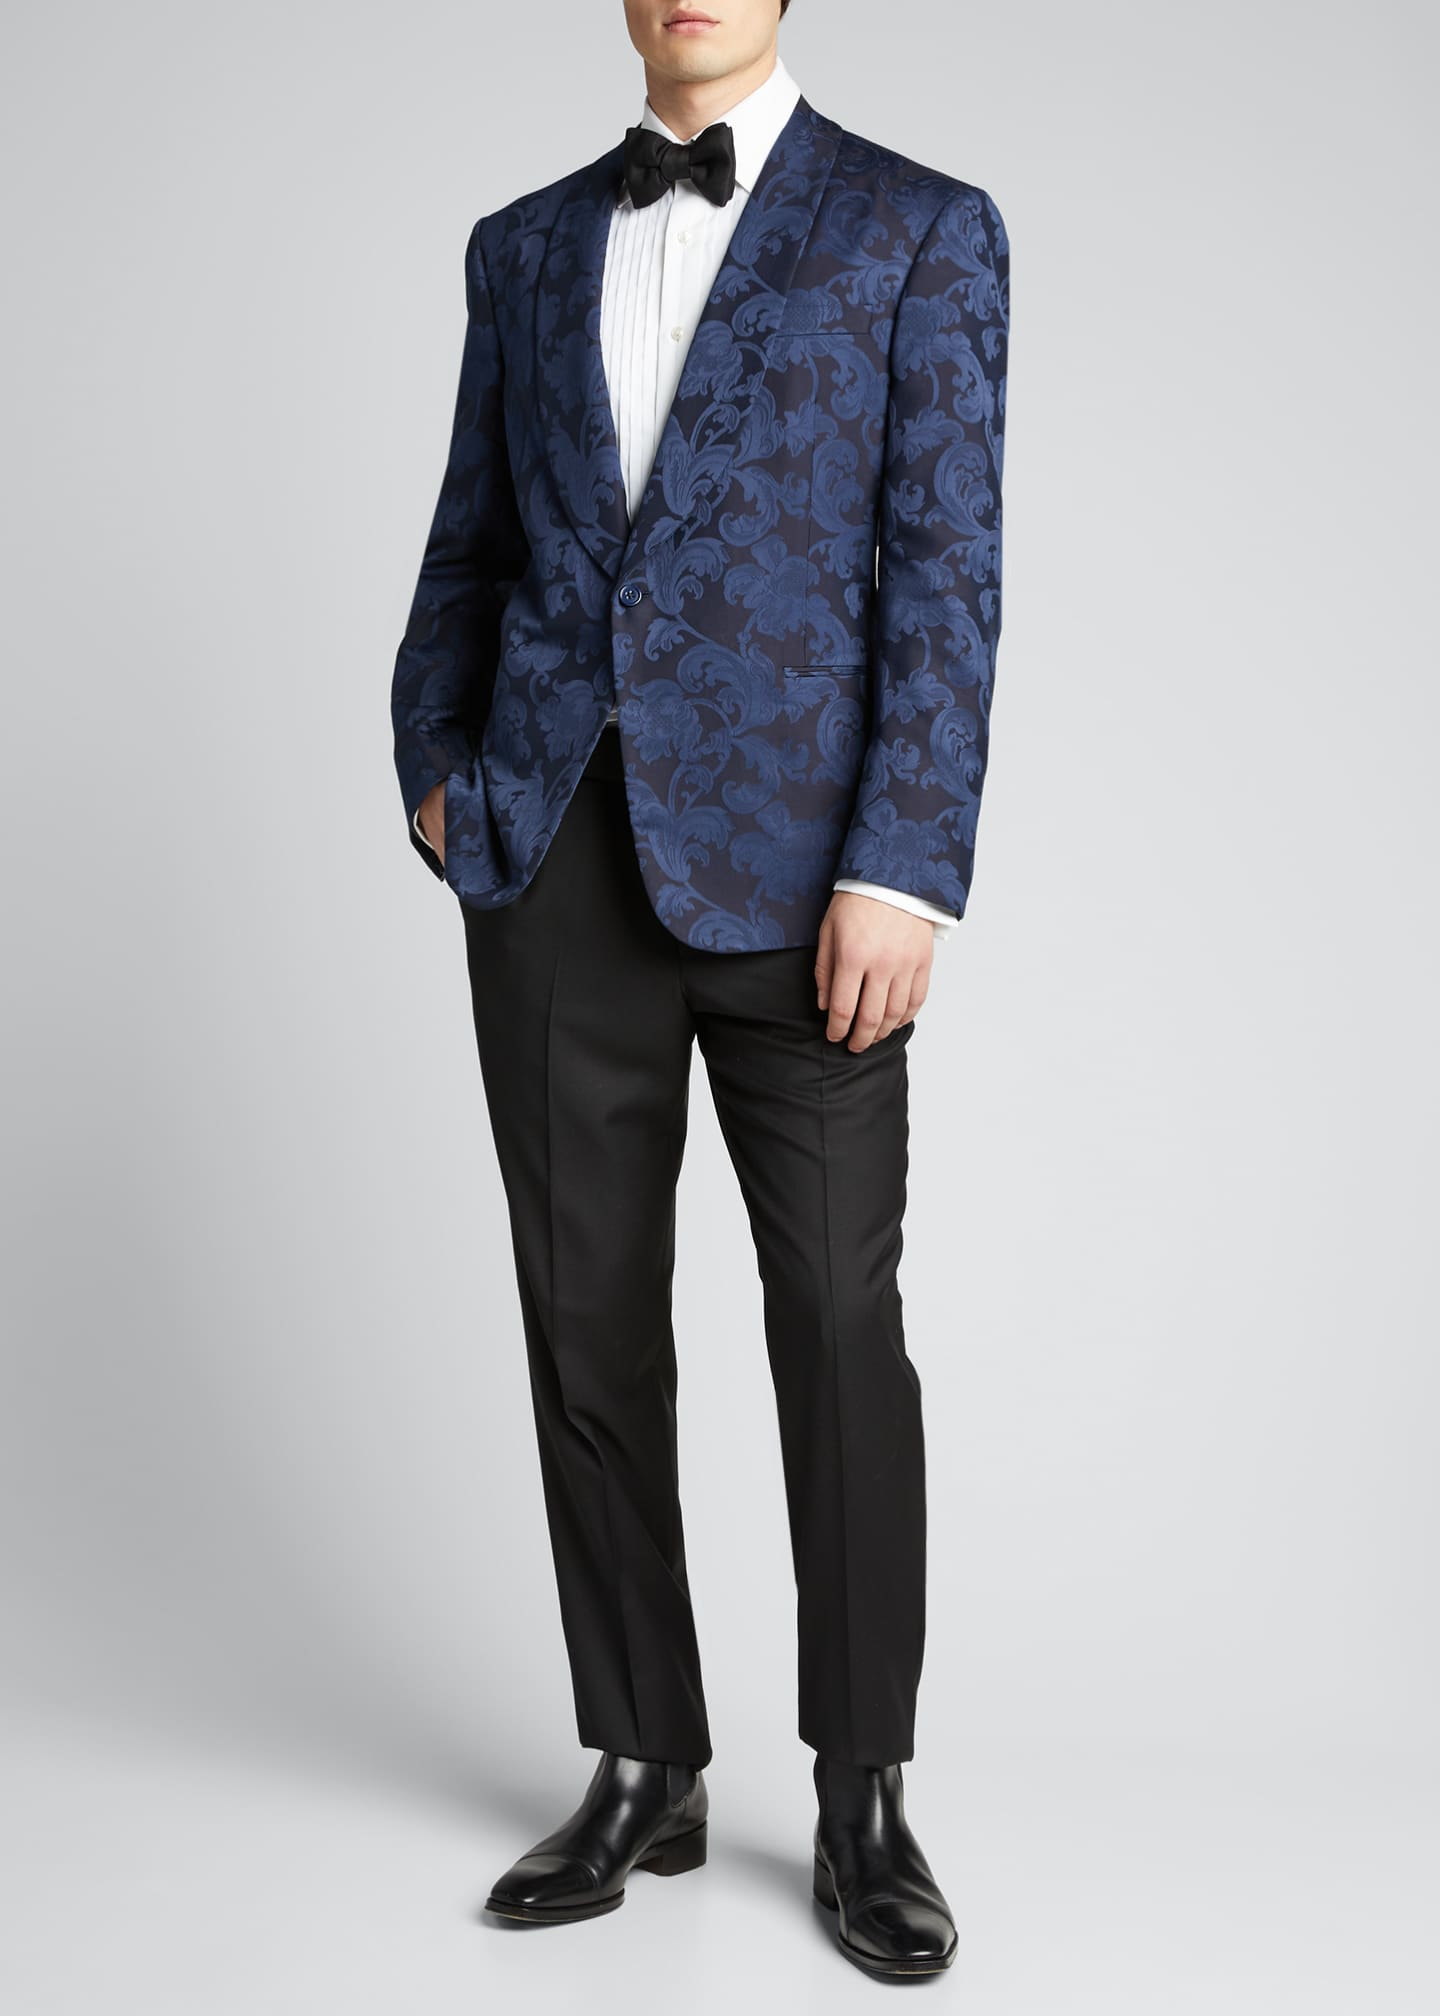 Men's Silk Jacquard Dinner Jacket